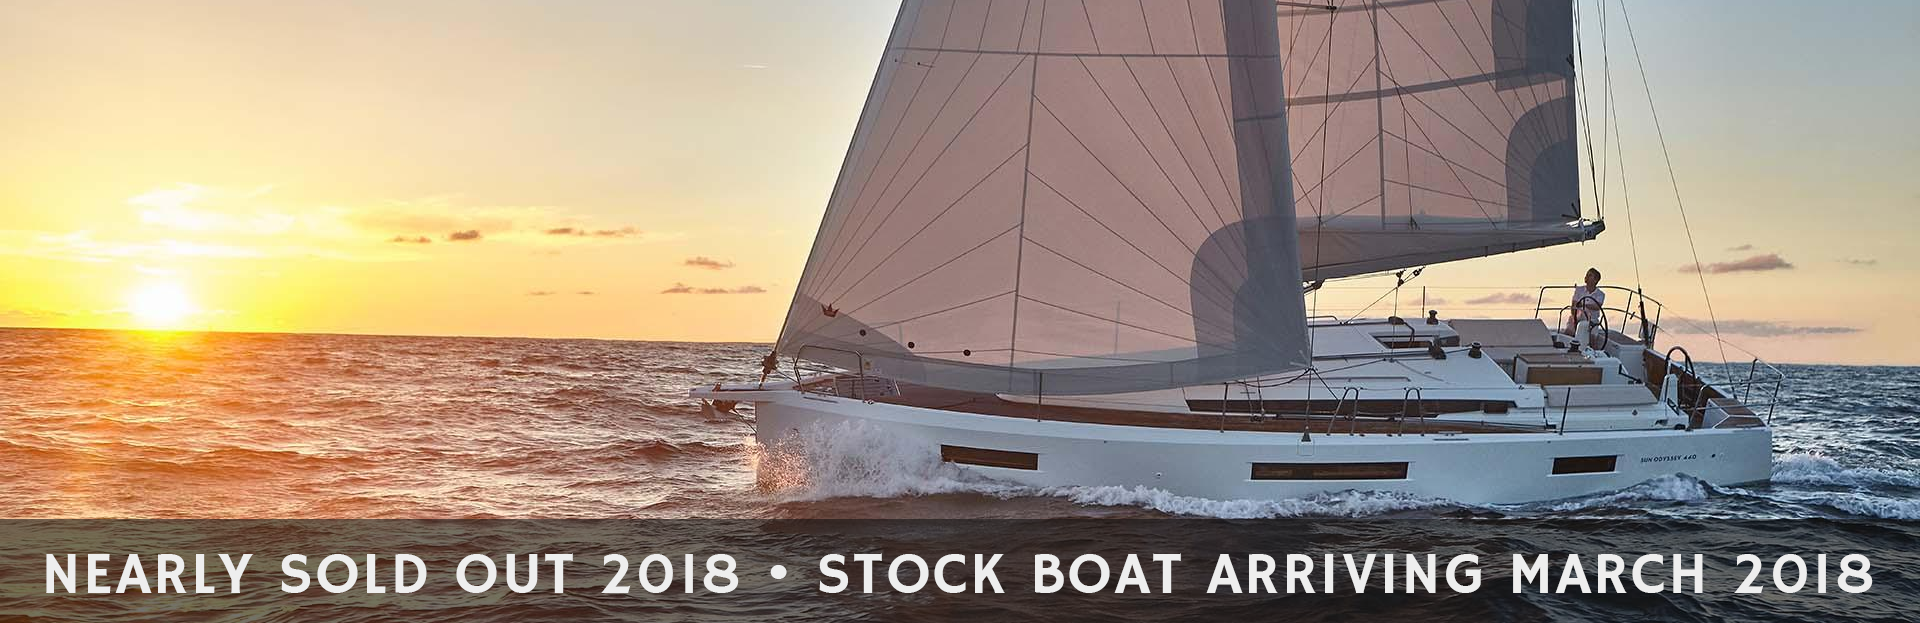 Nearly Sold Out 2018 - Stock Boat Arriving March 2018